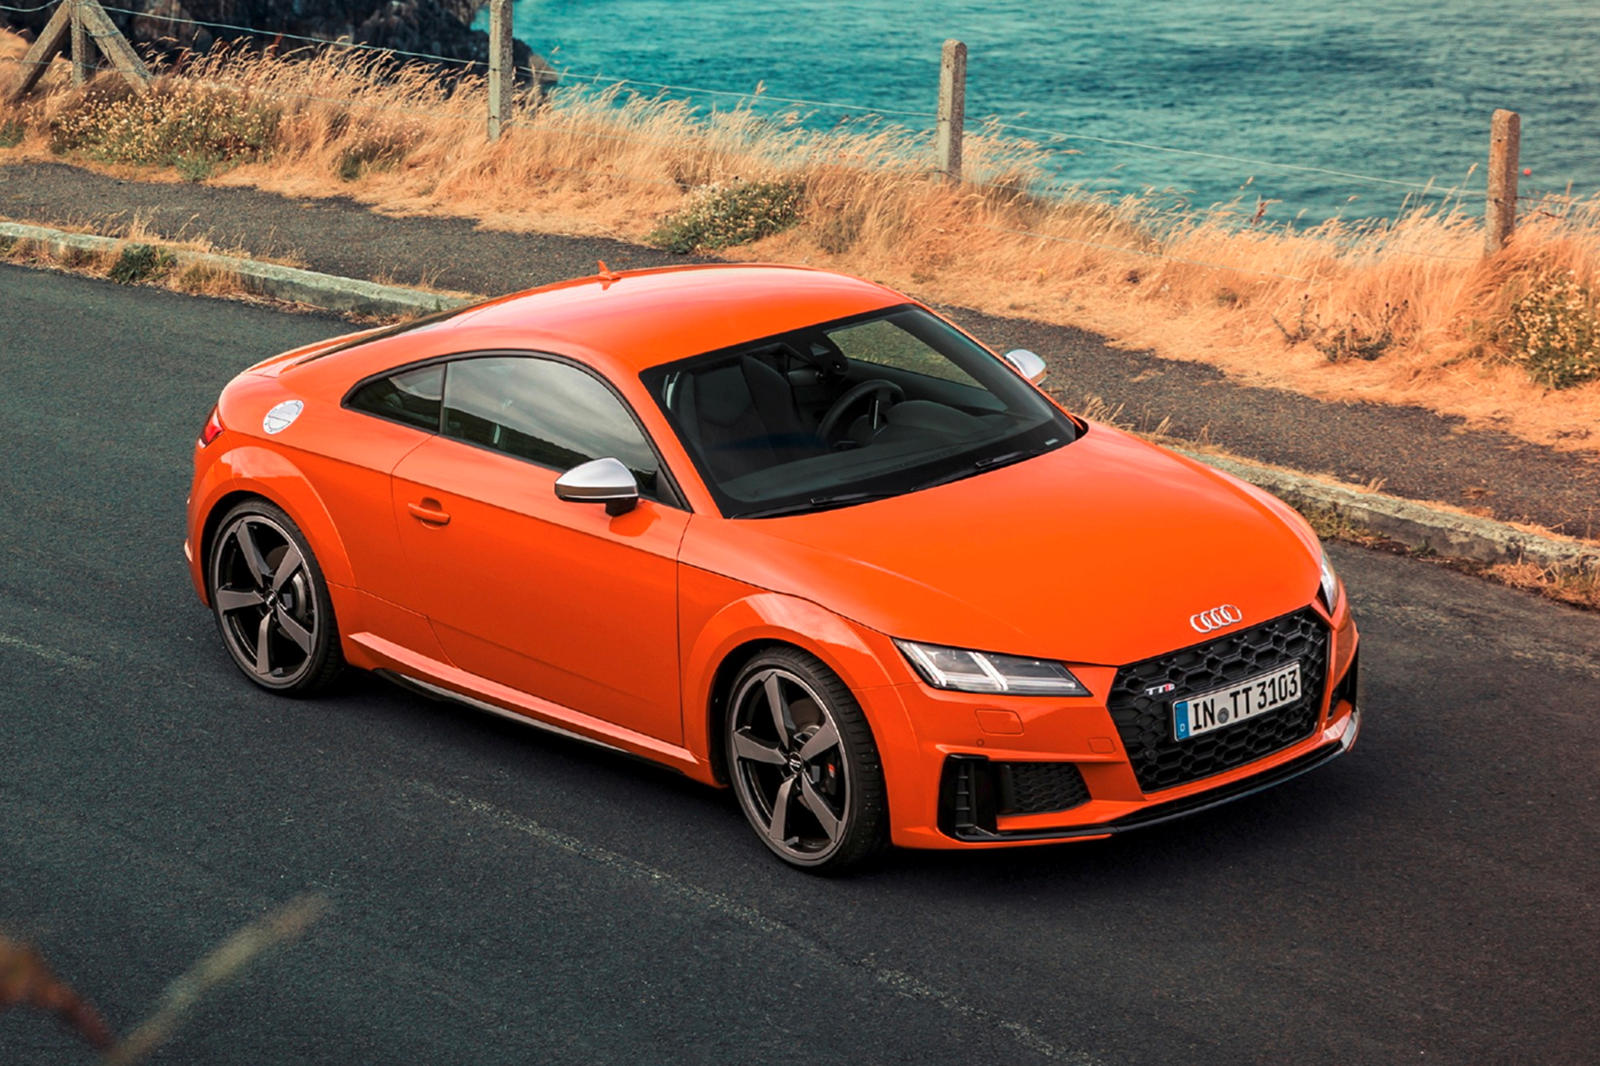 2019 Audi Tts Coupe Review Trims Specs Price New Interior Features Exterior Design And Specifications Carbuzz